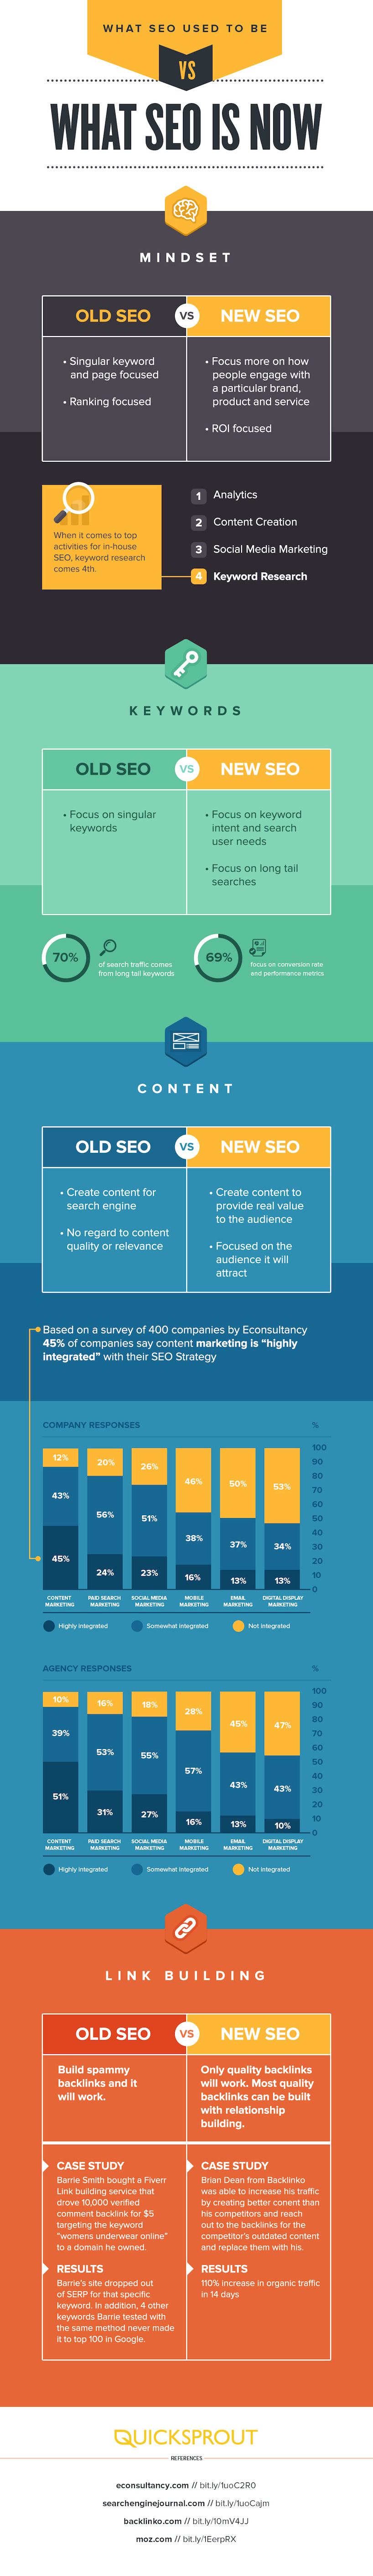 infografia-what-seo-is-now-blog-hostalia-hosting